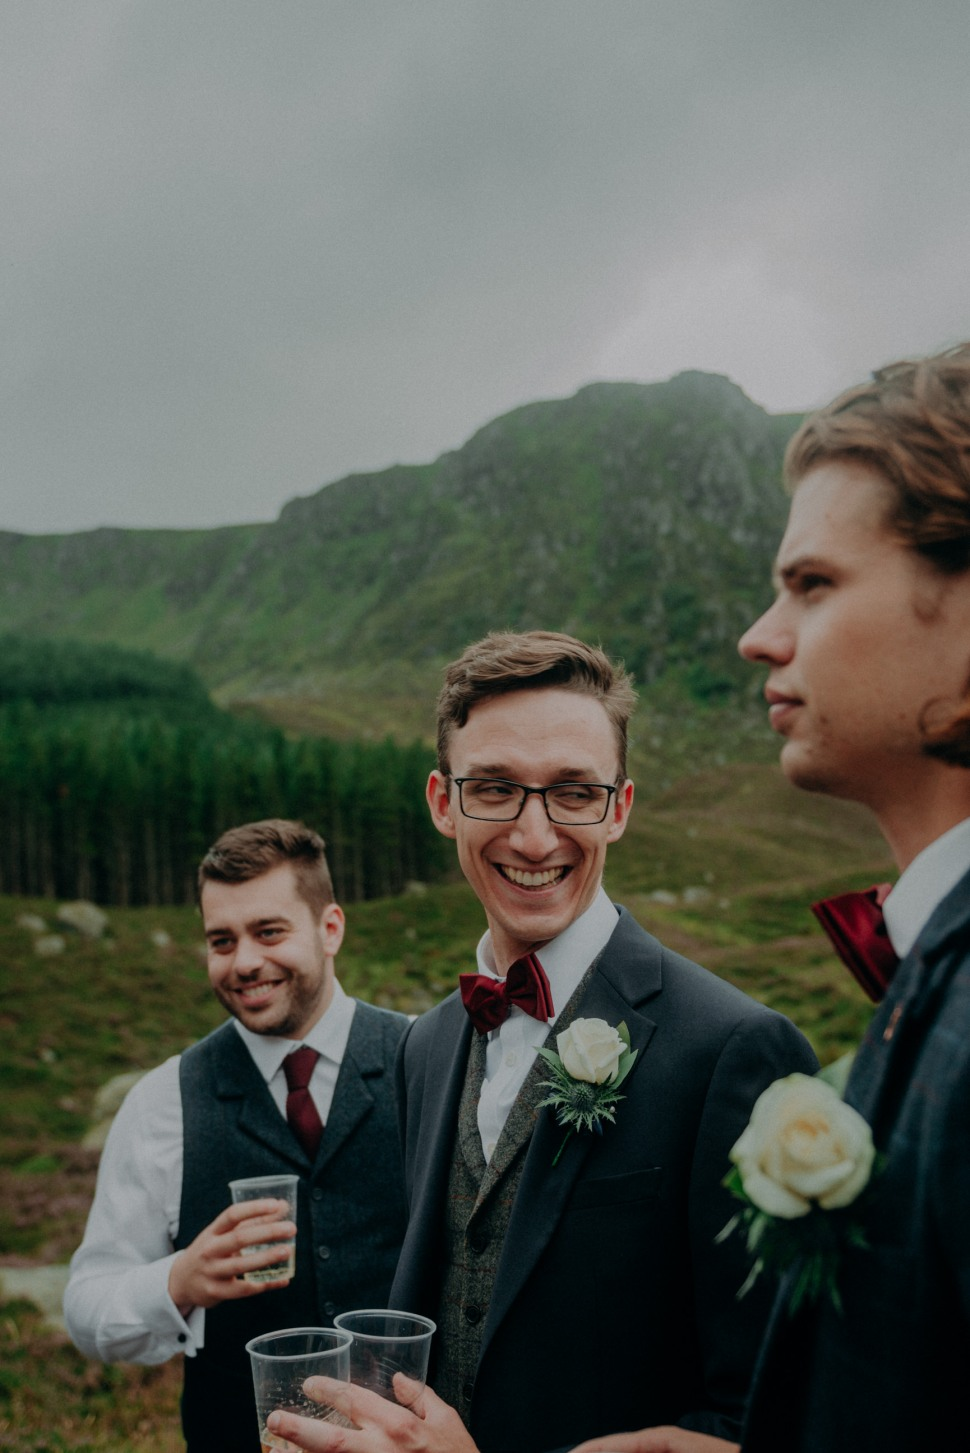 wedding-photographer-scotland-glen-clova-31